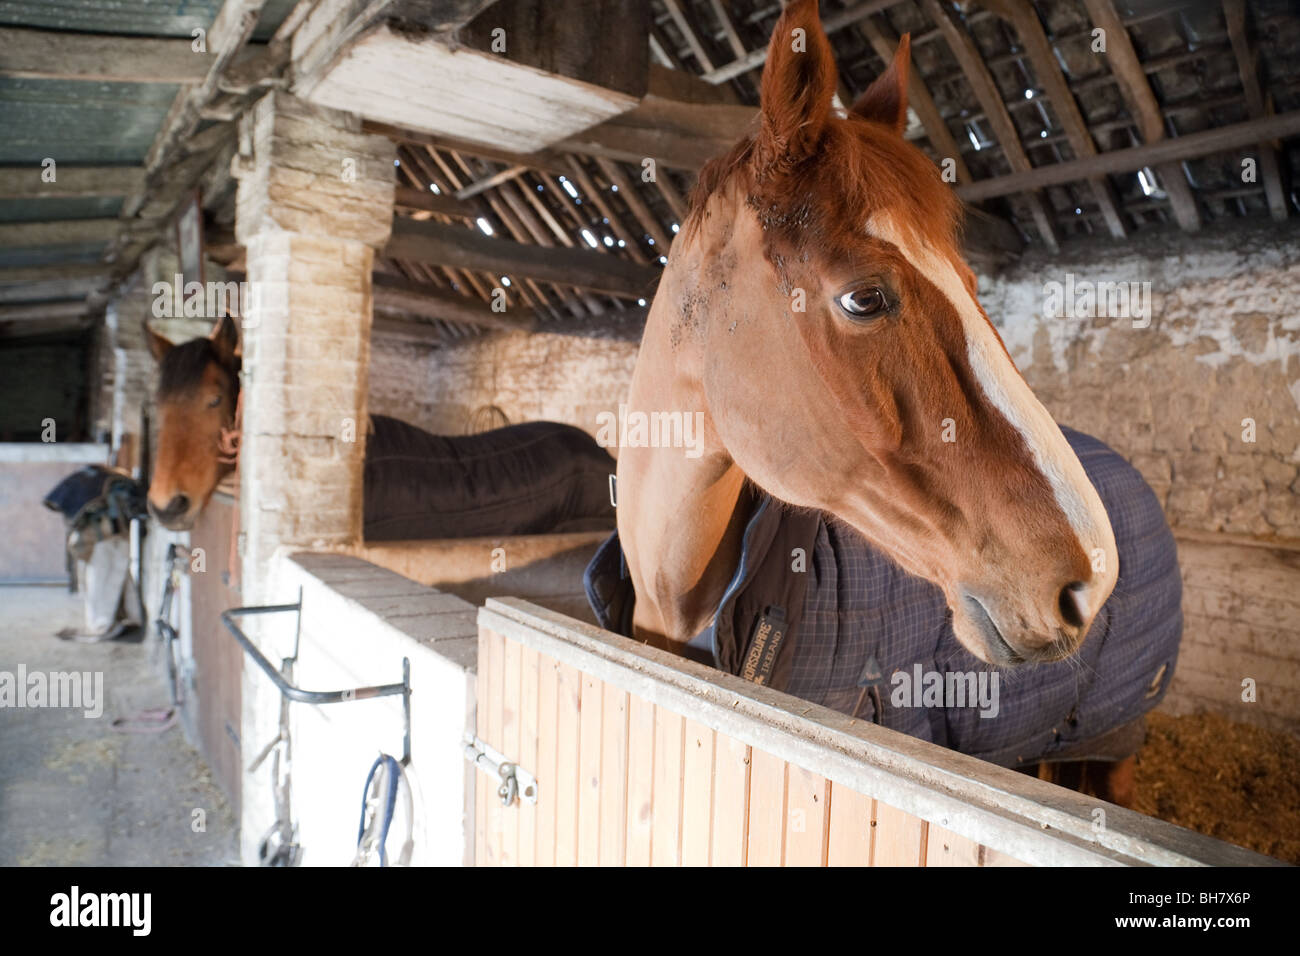 Horses in their stable, Suffolk, UK - Stock Image